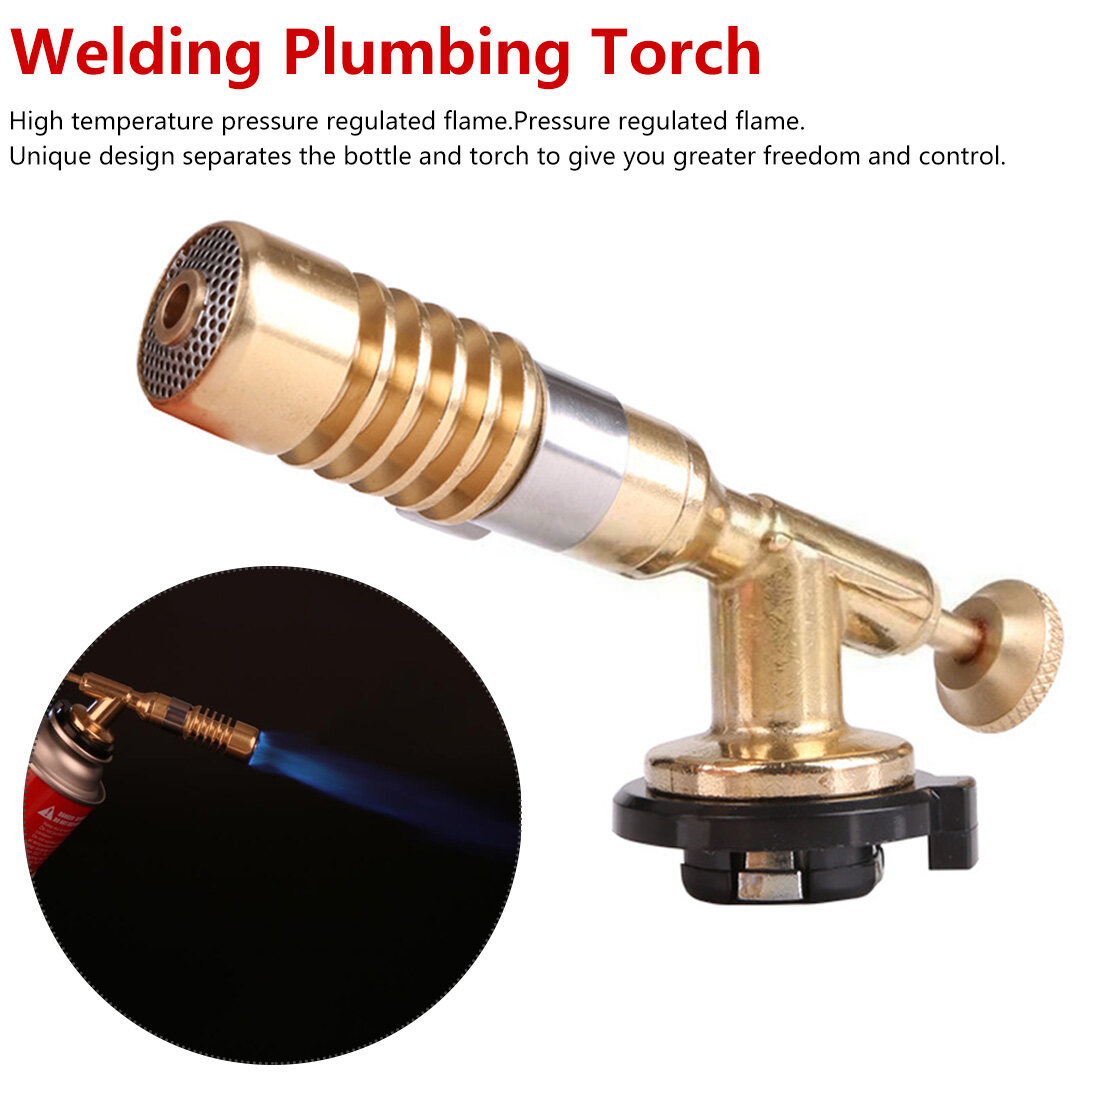 High Temperature Gas Torch Brass Mapp Ignition Brazing Solder Welding Plumbing Kit